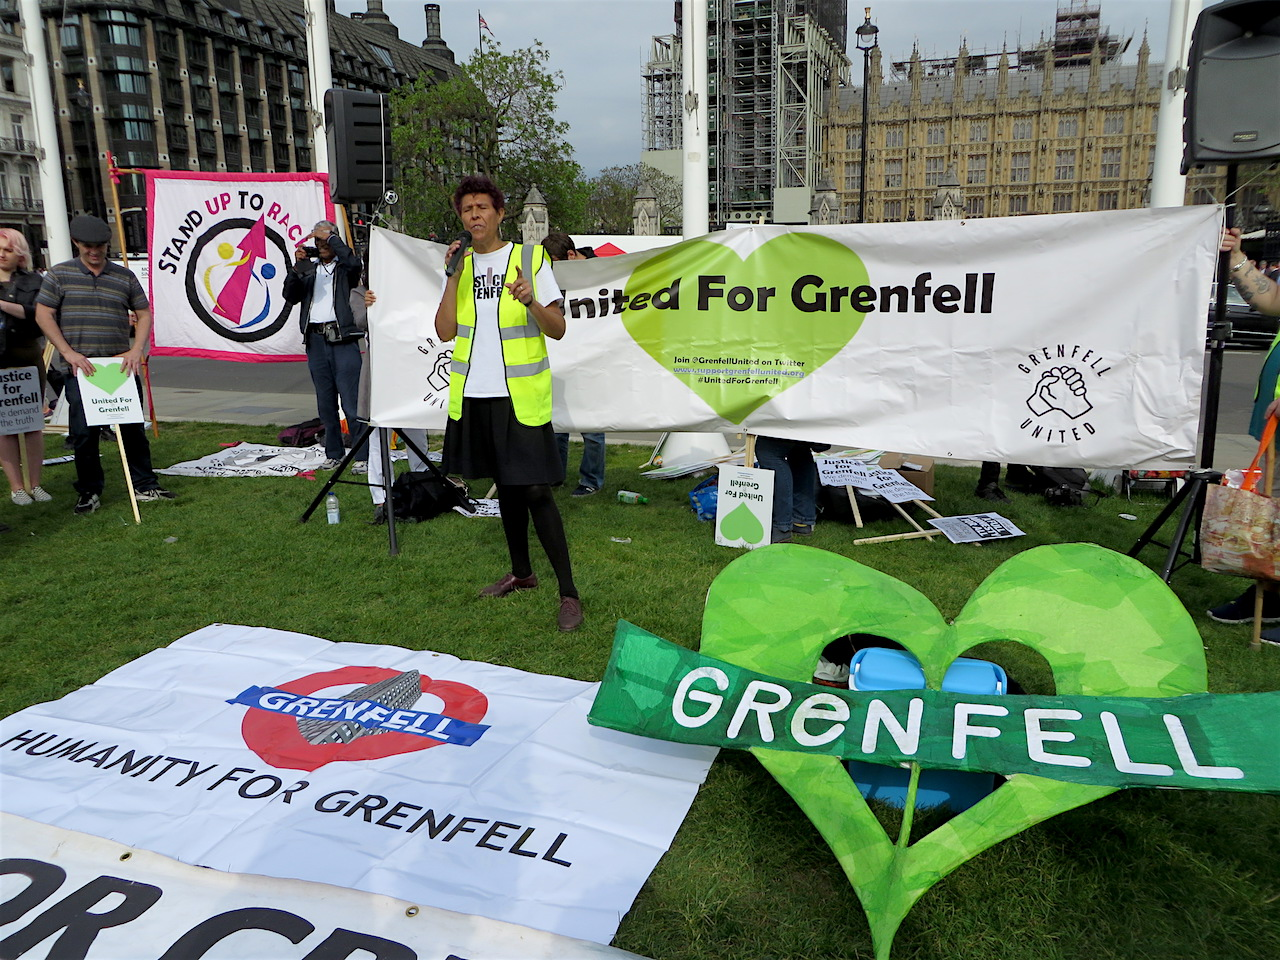 Moyra Samuels of Justice4Grenfell speaking at the rally in Parliament Square on May 14, 2018, marking eleven month since the entirely preventable fire that engulfed Grenfell Tower in west London, killing 71 people (Photo: Andy Worthington).